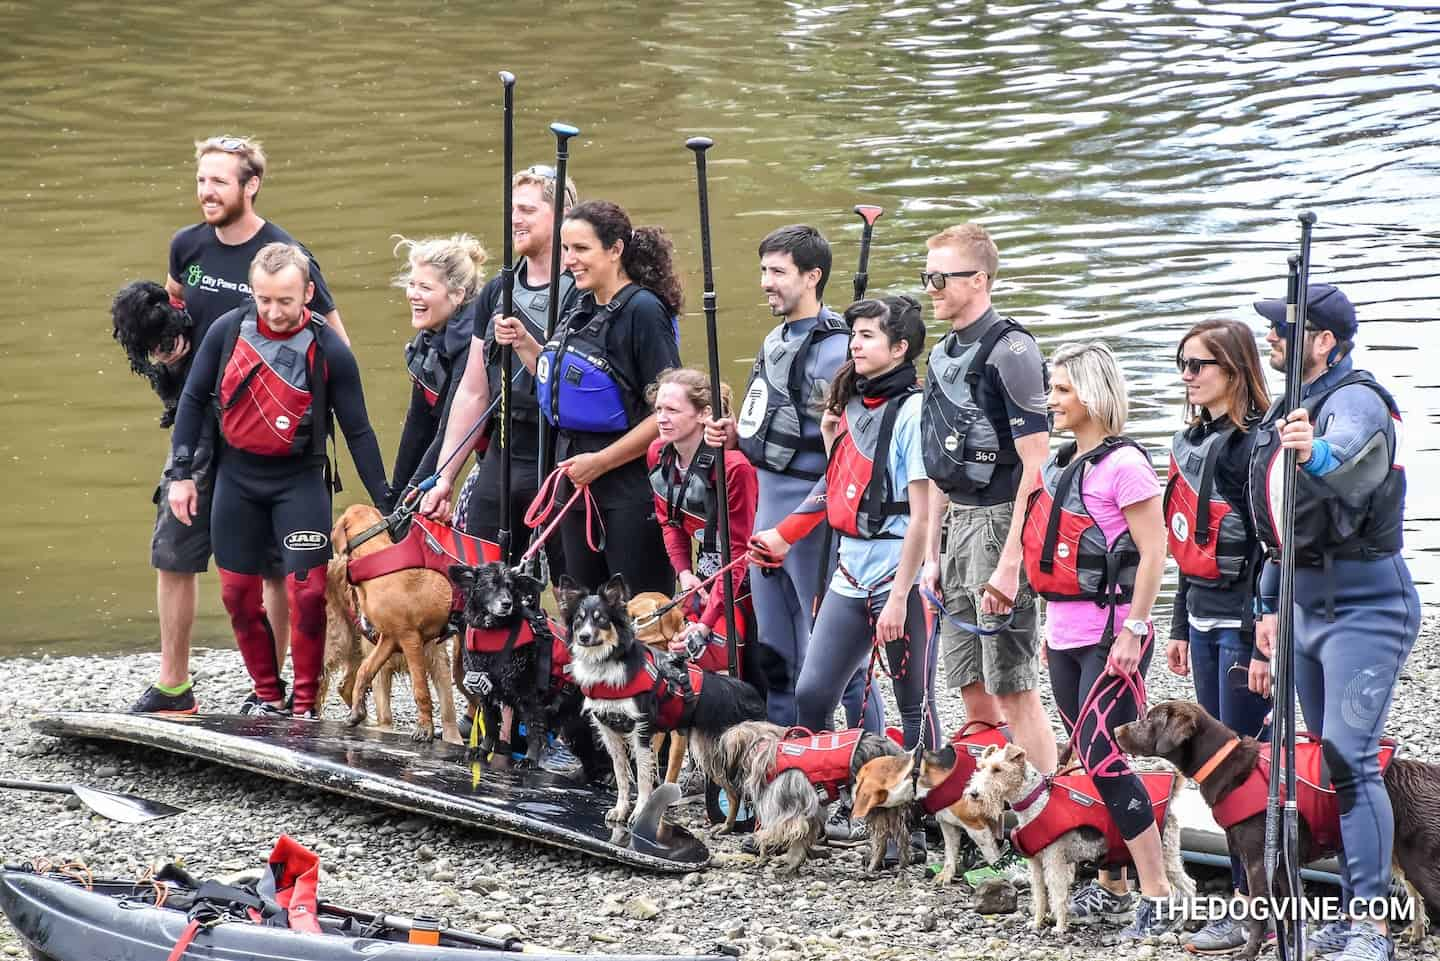 Your London Dog Events Agenda for 08-09 September - Dog and Human Paddle Boarding 2